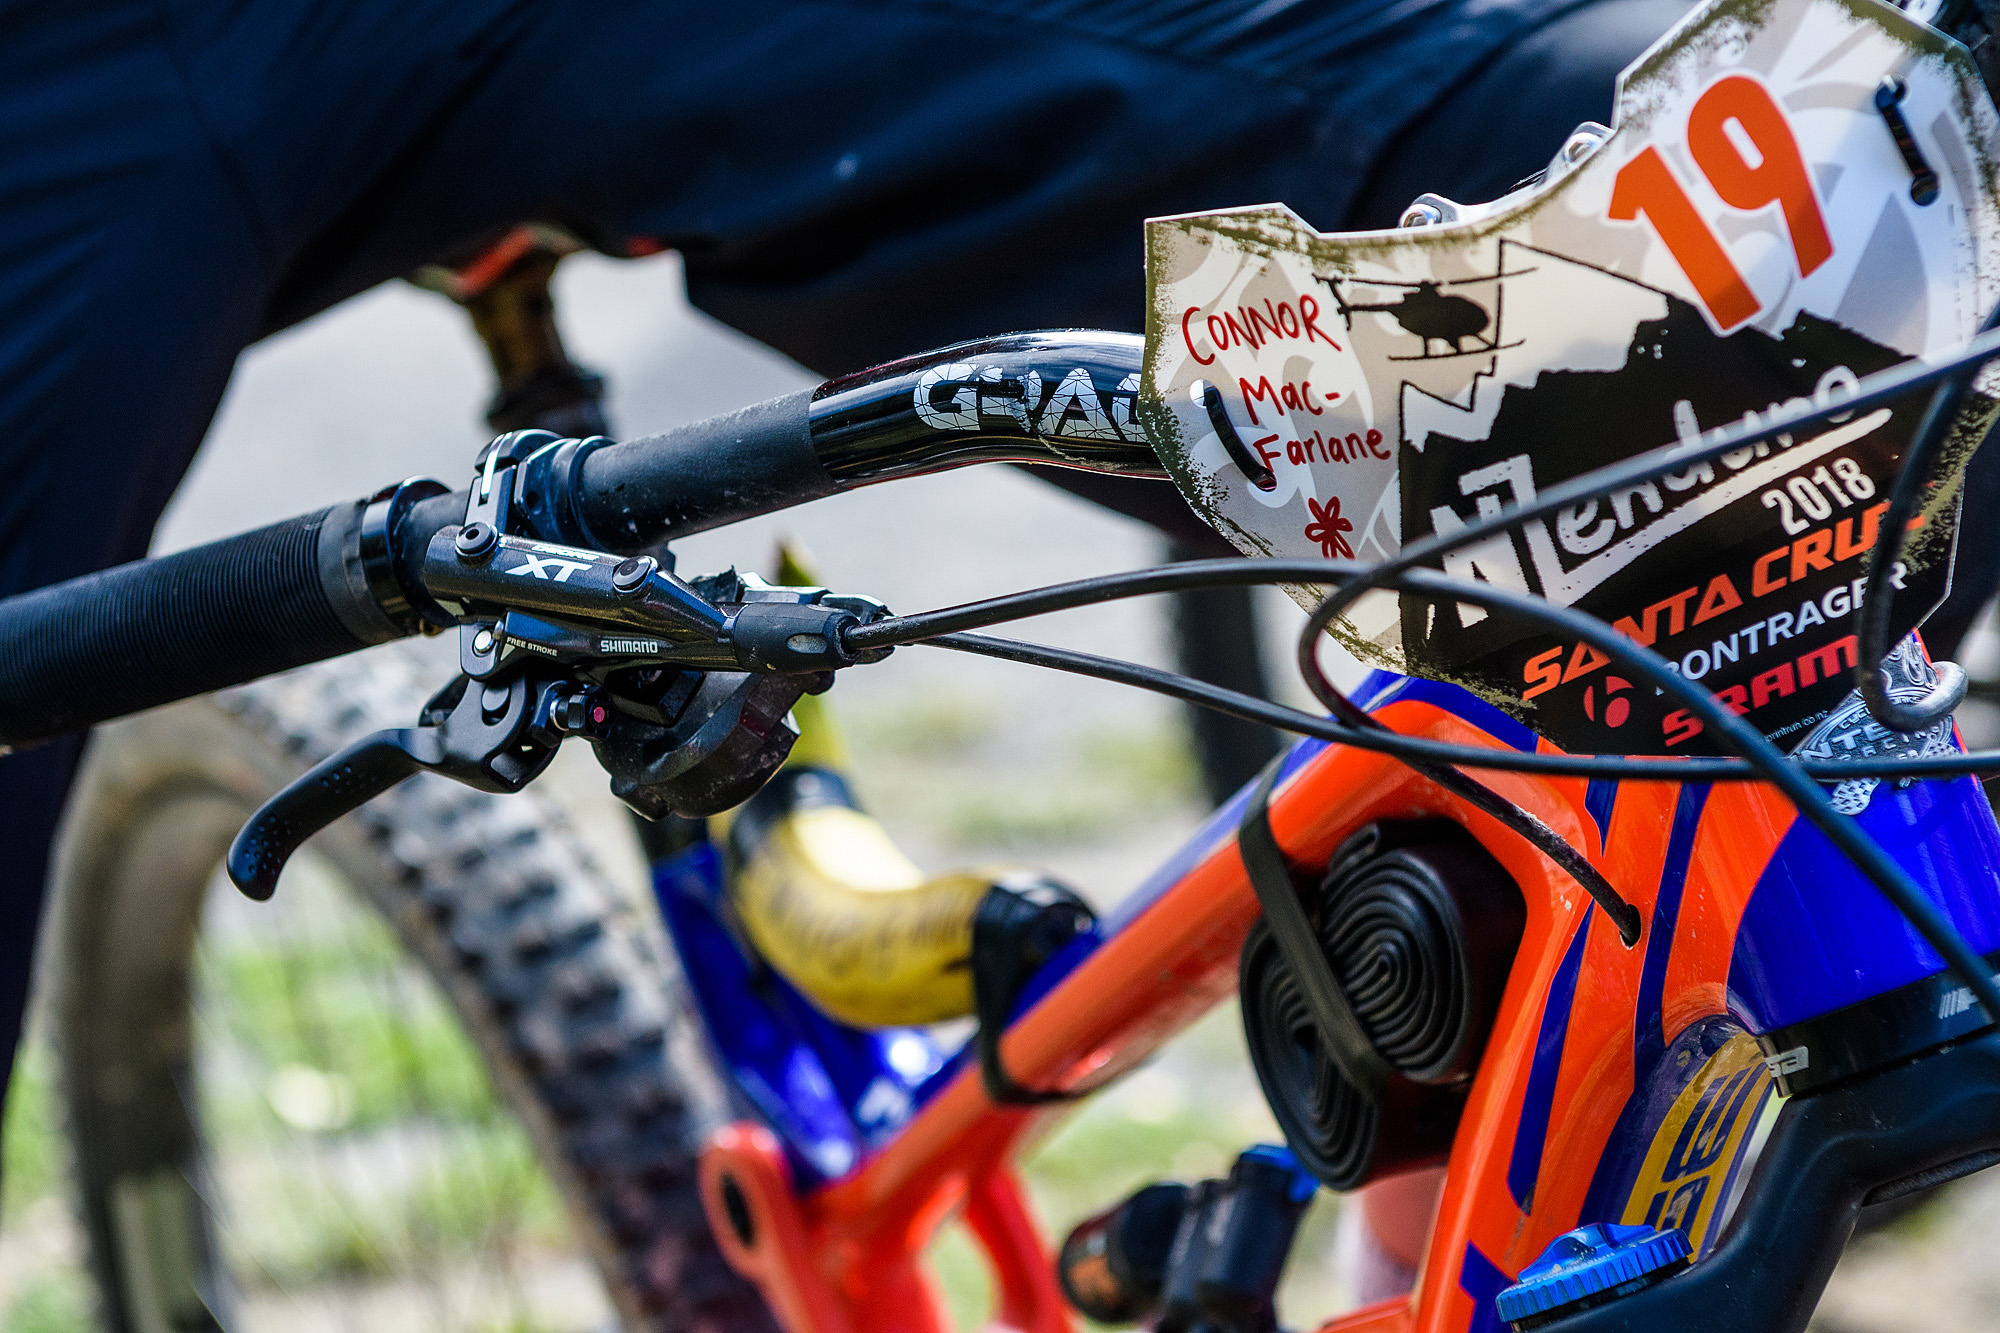 140 riders came from 10 countries to race on the historic trails of the Marlbrough region.